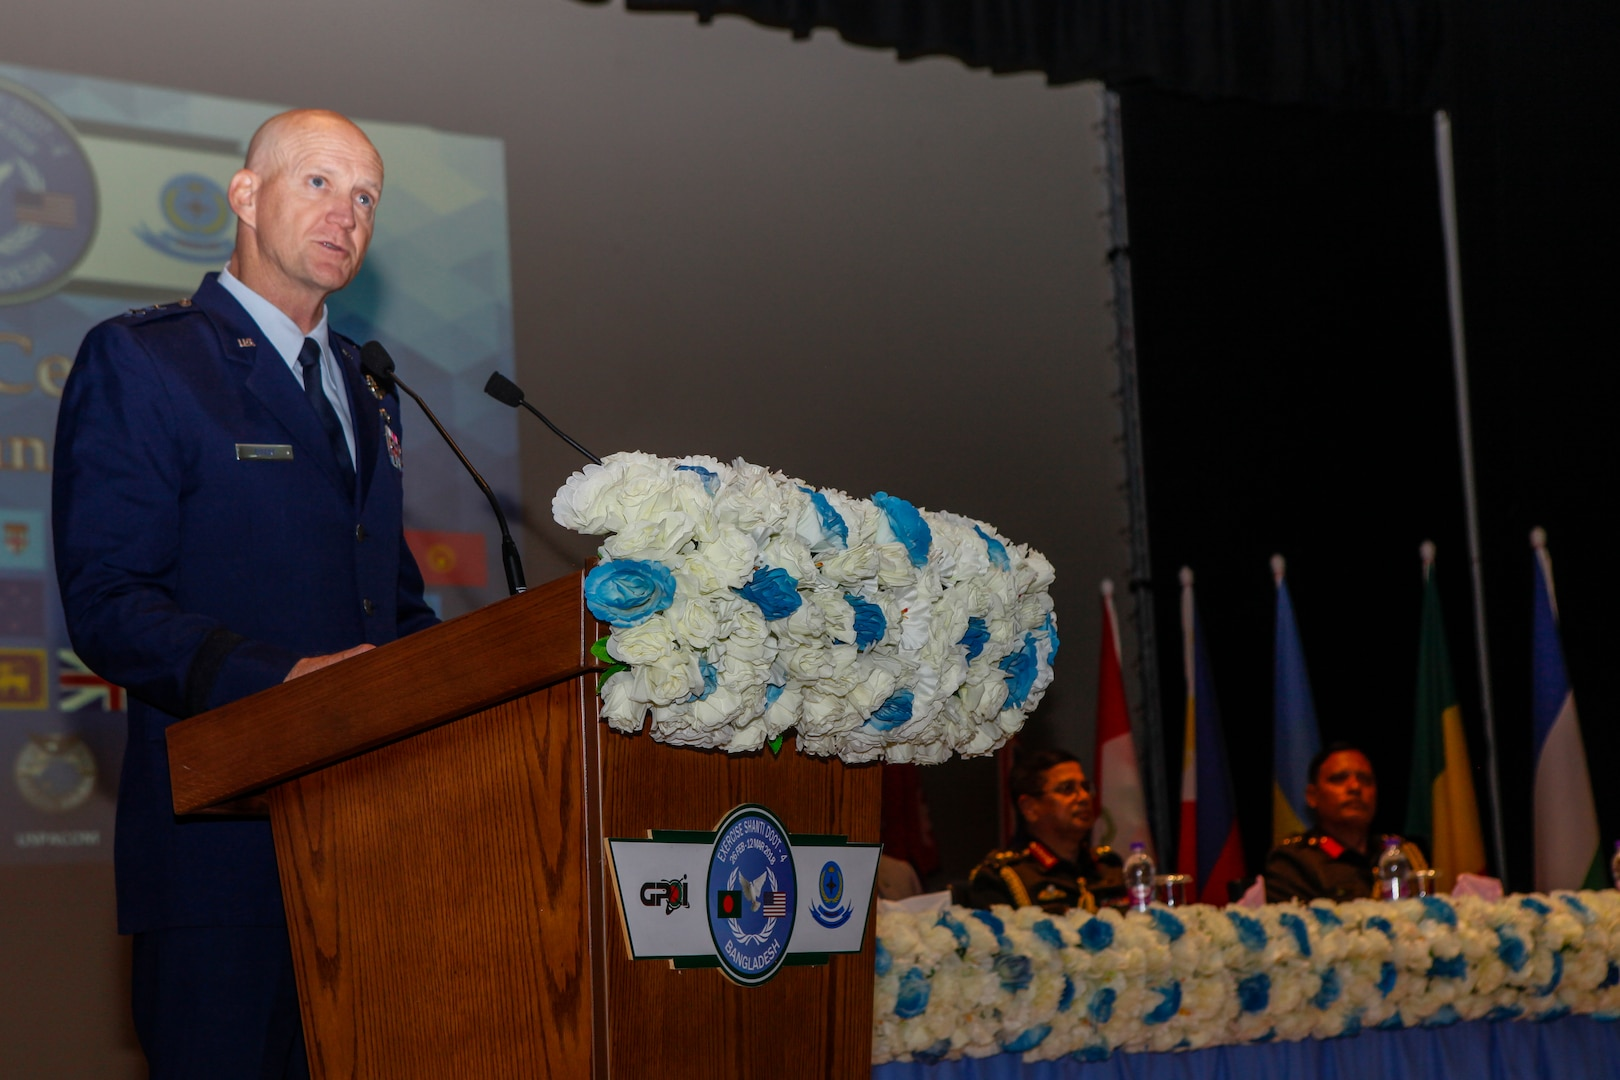 U.S. Air Force Maj. Gen. James O. Eifert, Air National Guard Assistant to Commander, U.S. Pacific Airforce, gives a speech during the opening ceremony for Exercise Shanti Doot 4 in Bangladesh.